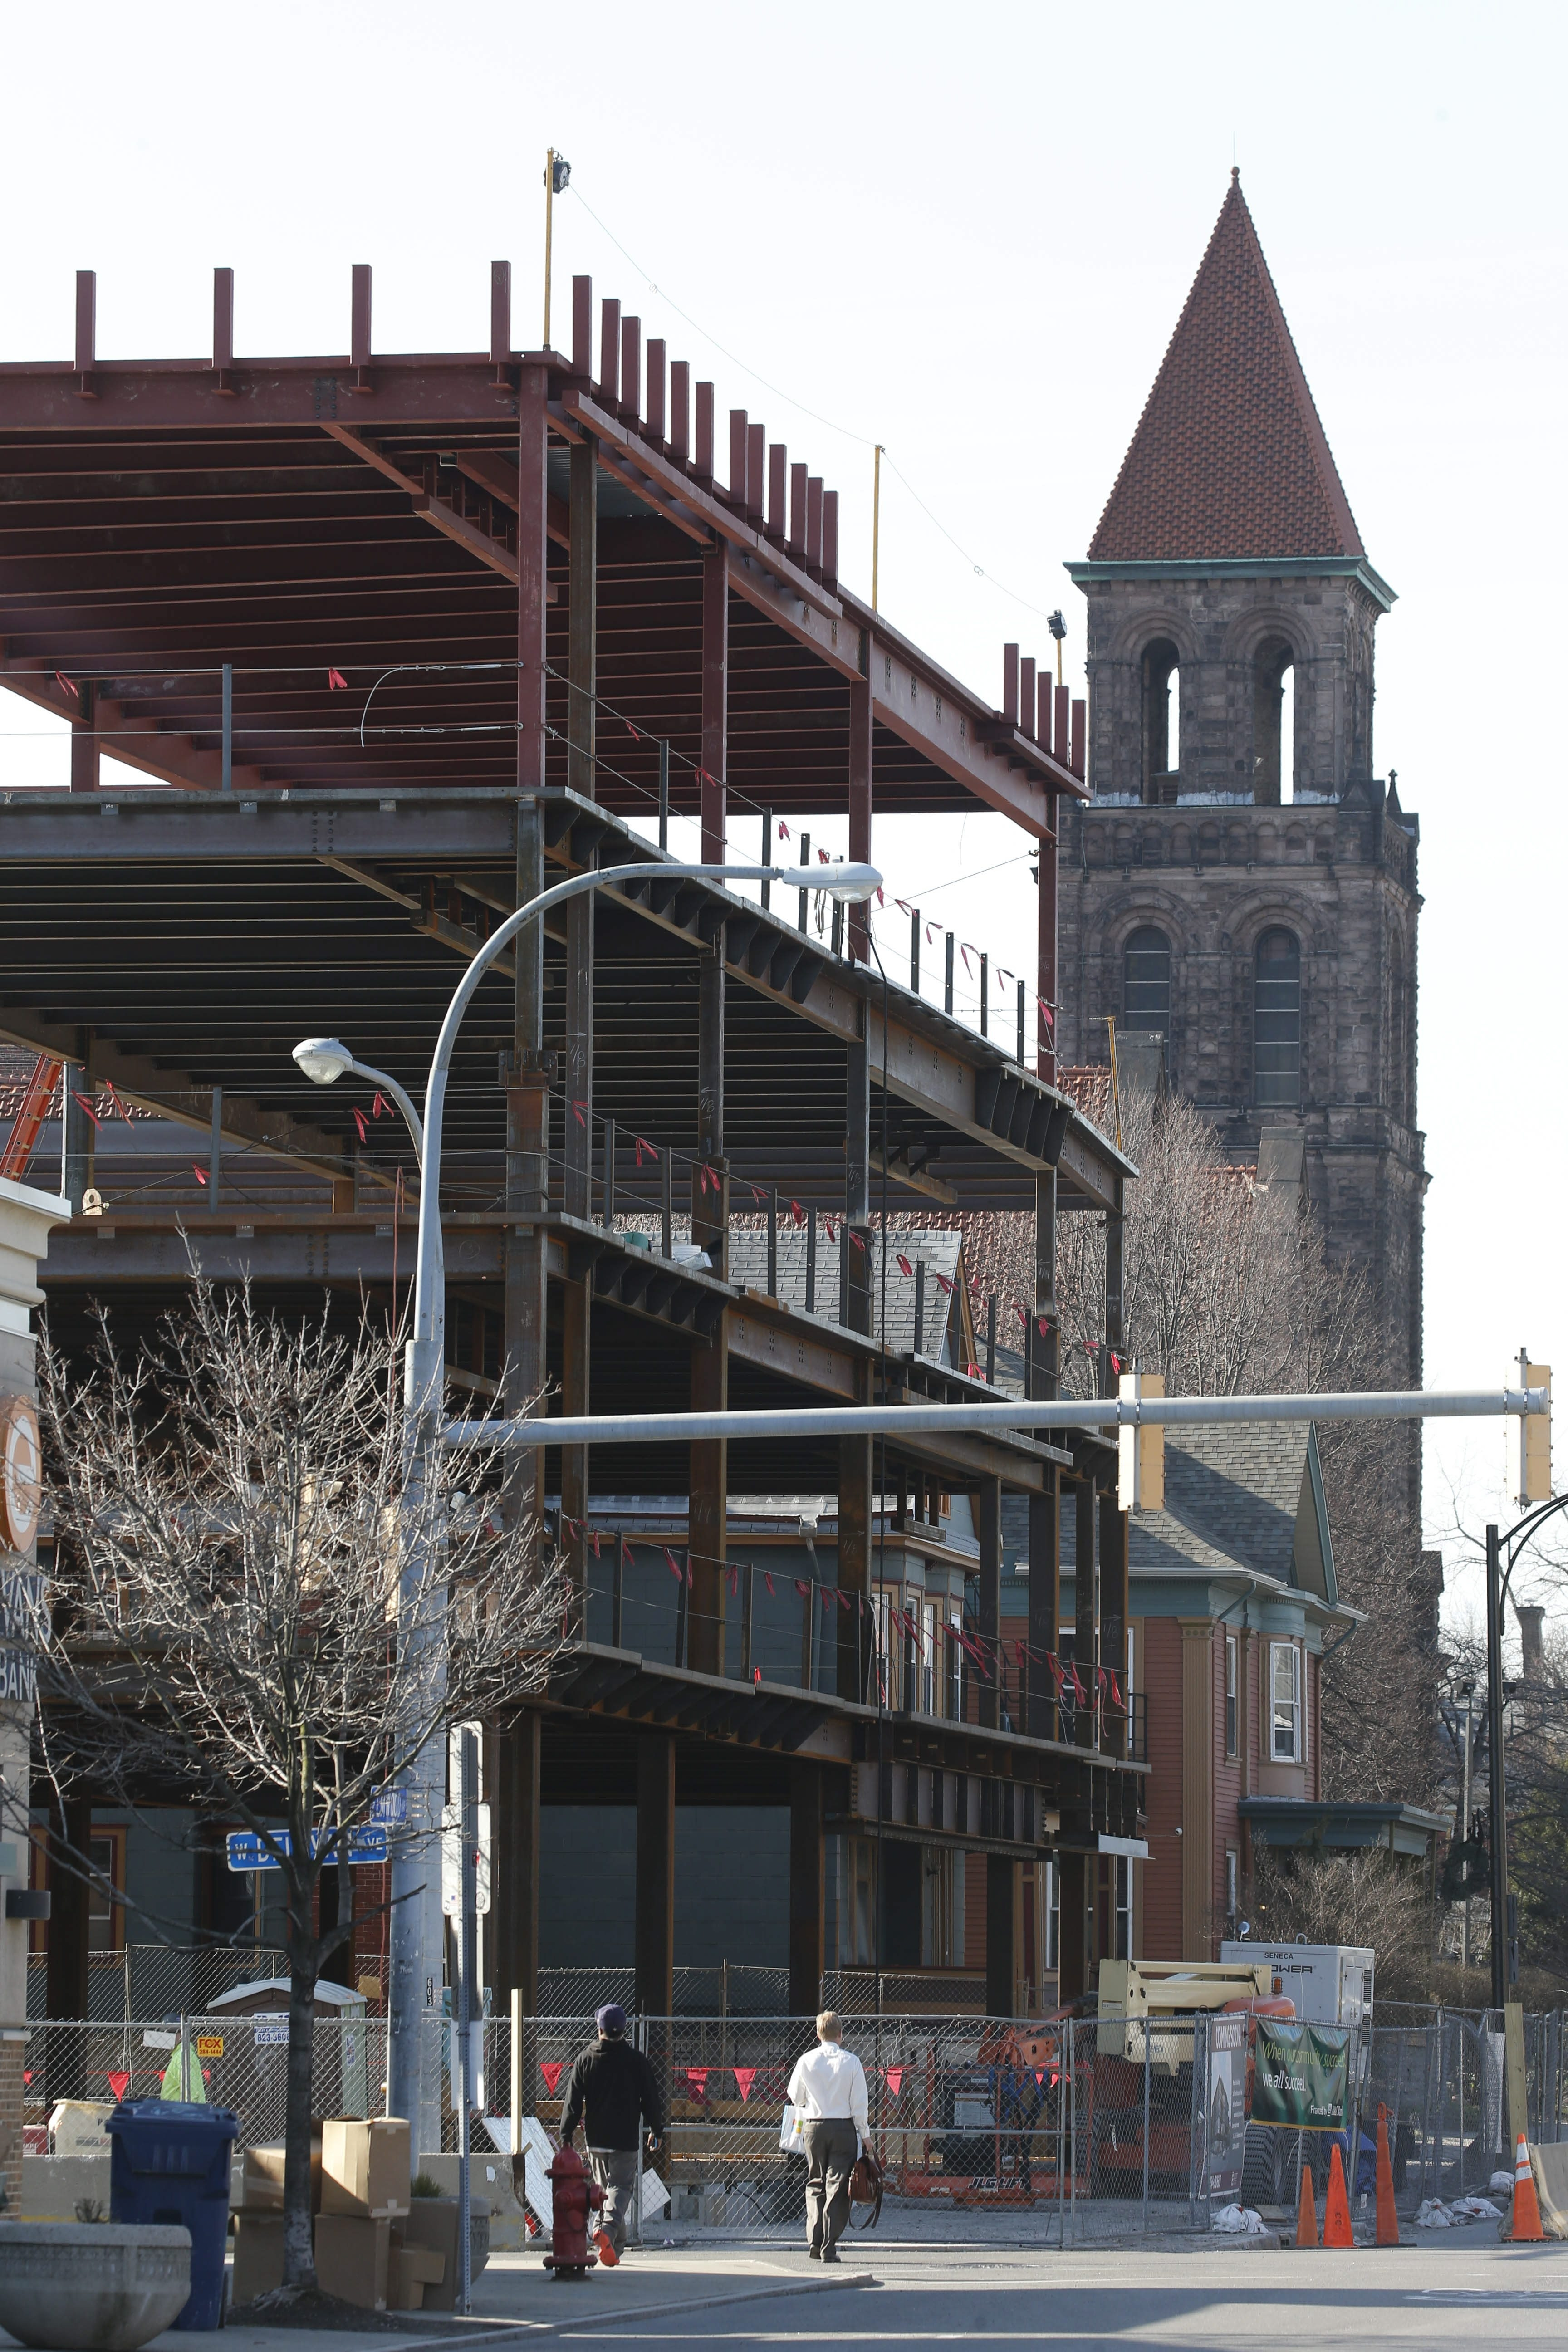 The steel frame of a new, mixed-use structure at the corner of Elmwood and West Delevan avenues rises in front of the steeple of the Lafayette Avenue Presbyterian Church, an icon of the Elmwood Village.